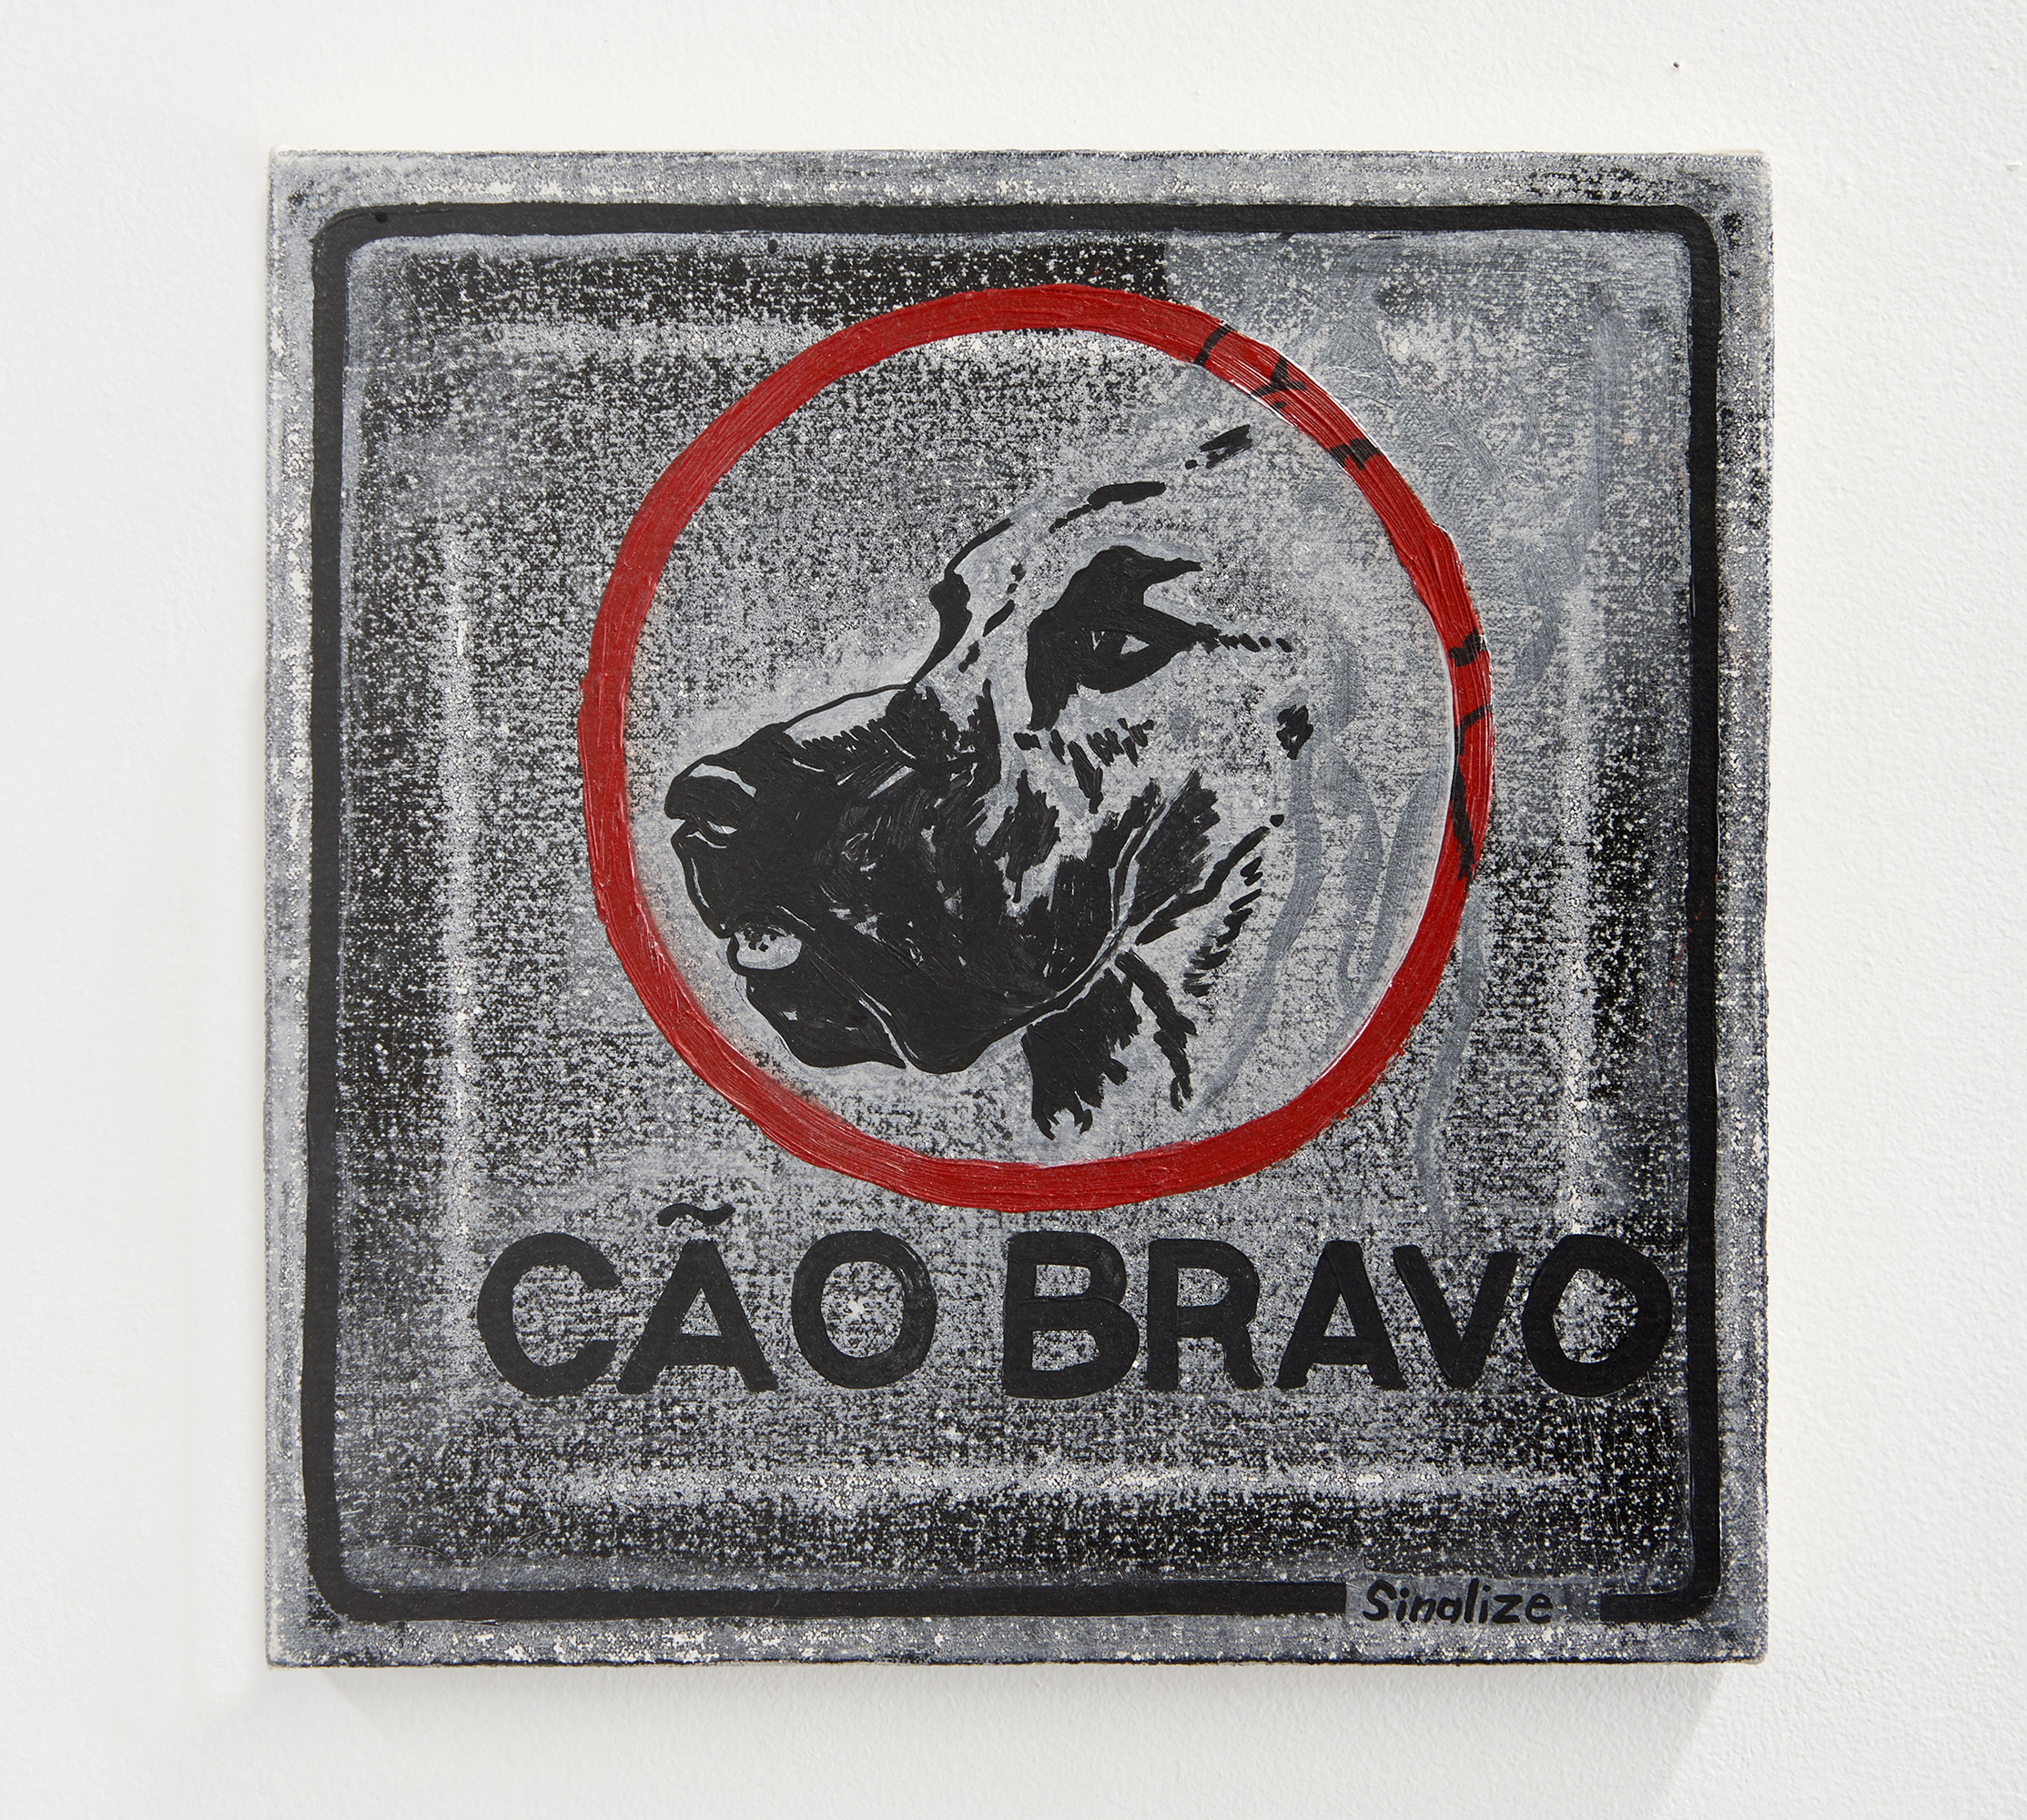 Cã0 Bravo /// Angry Dog    acrylic and oil on canvas  2017